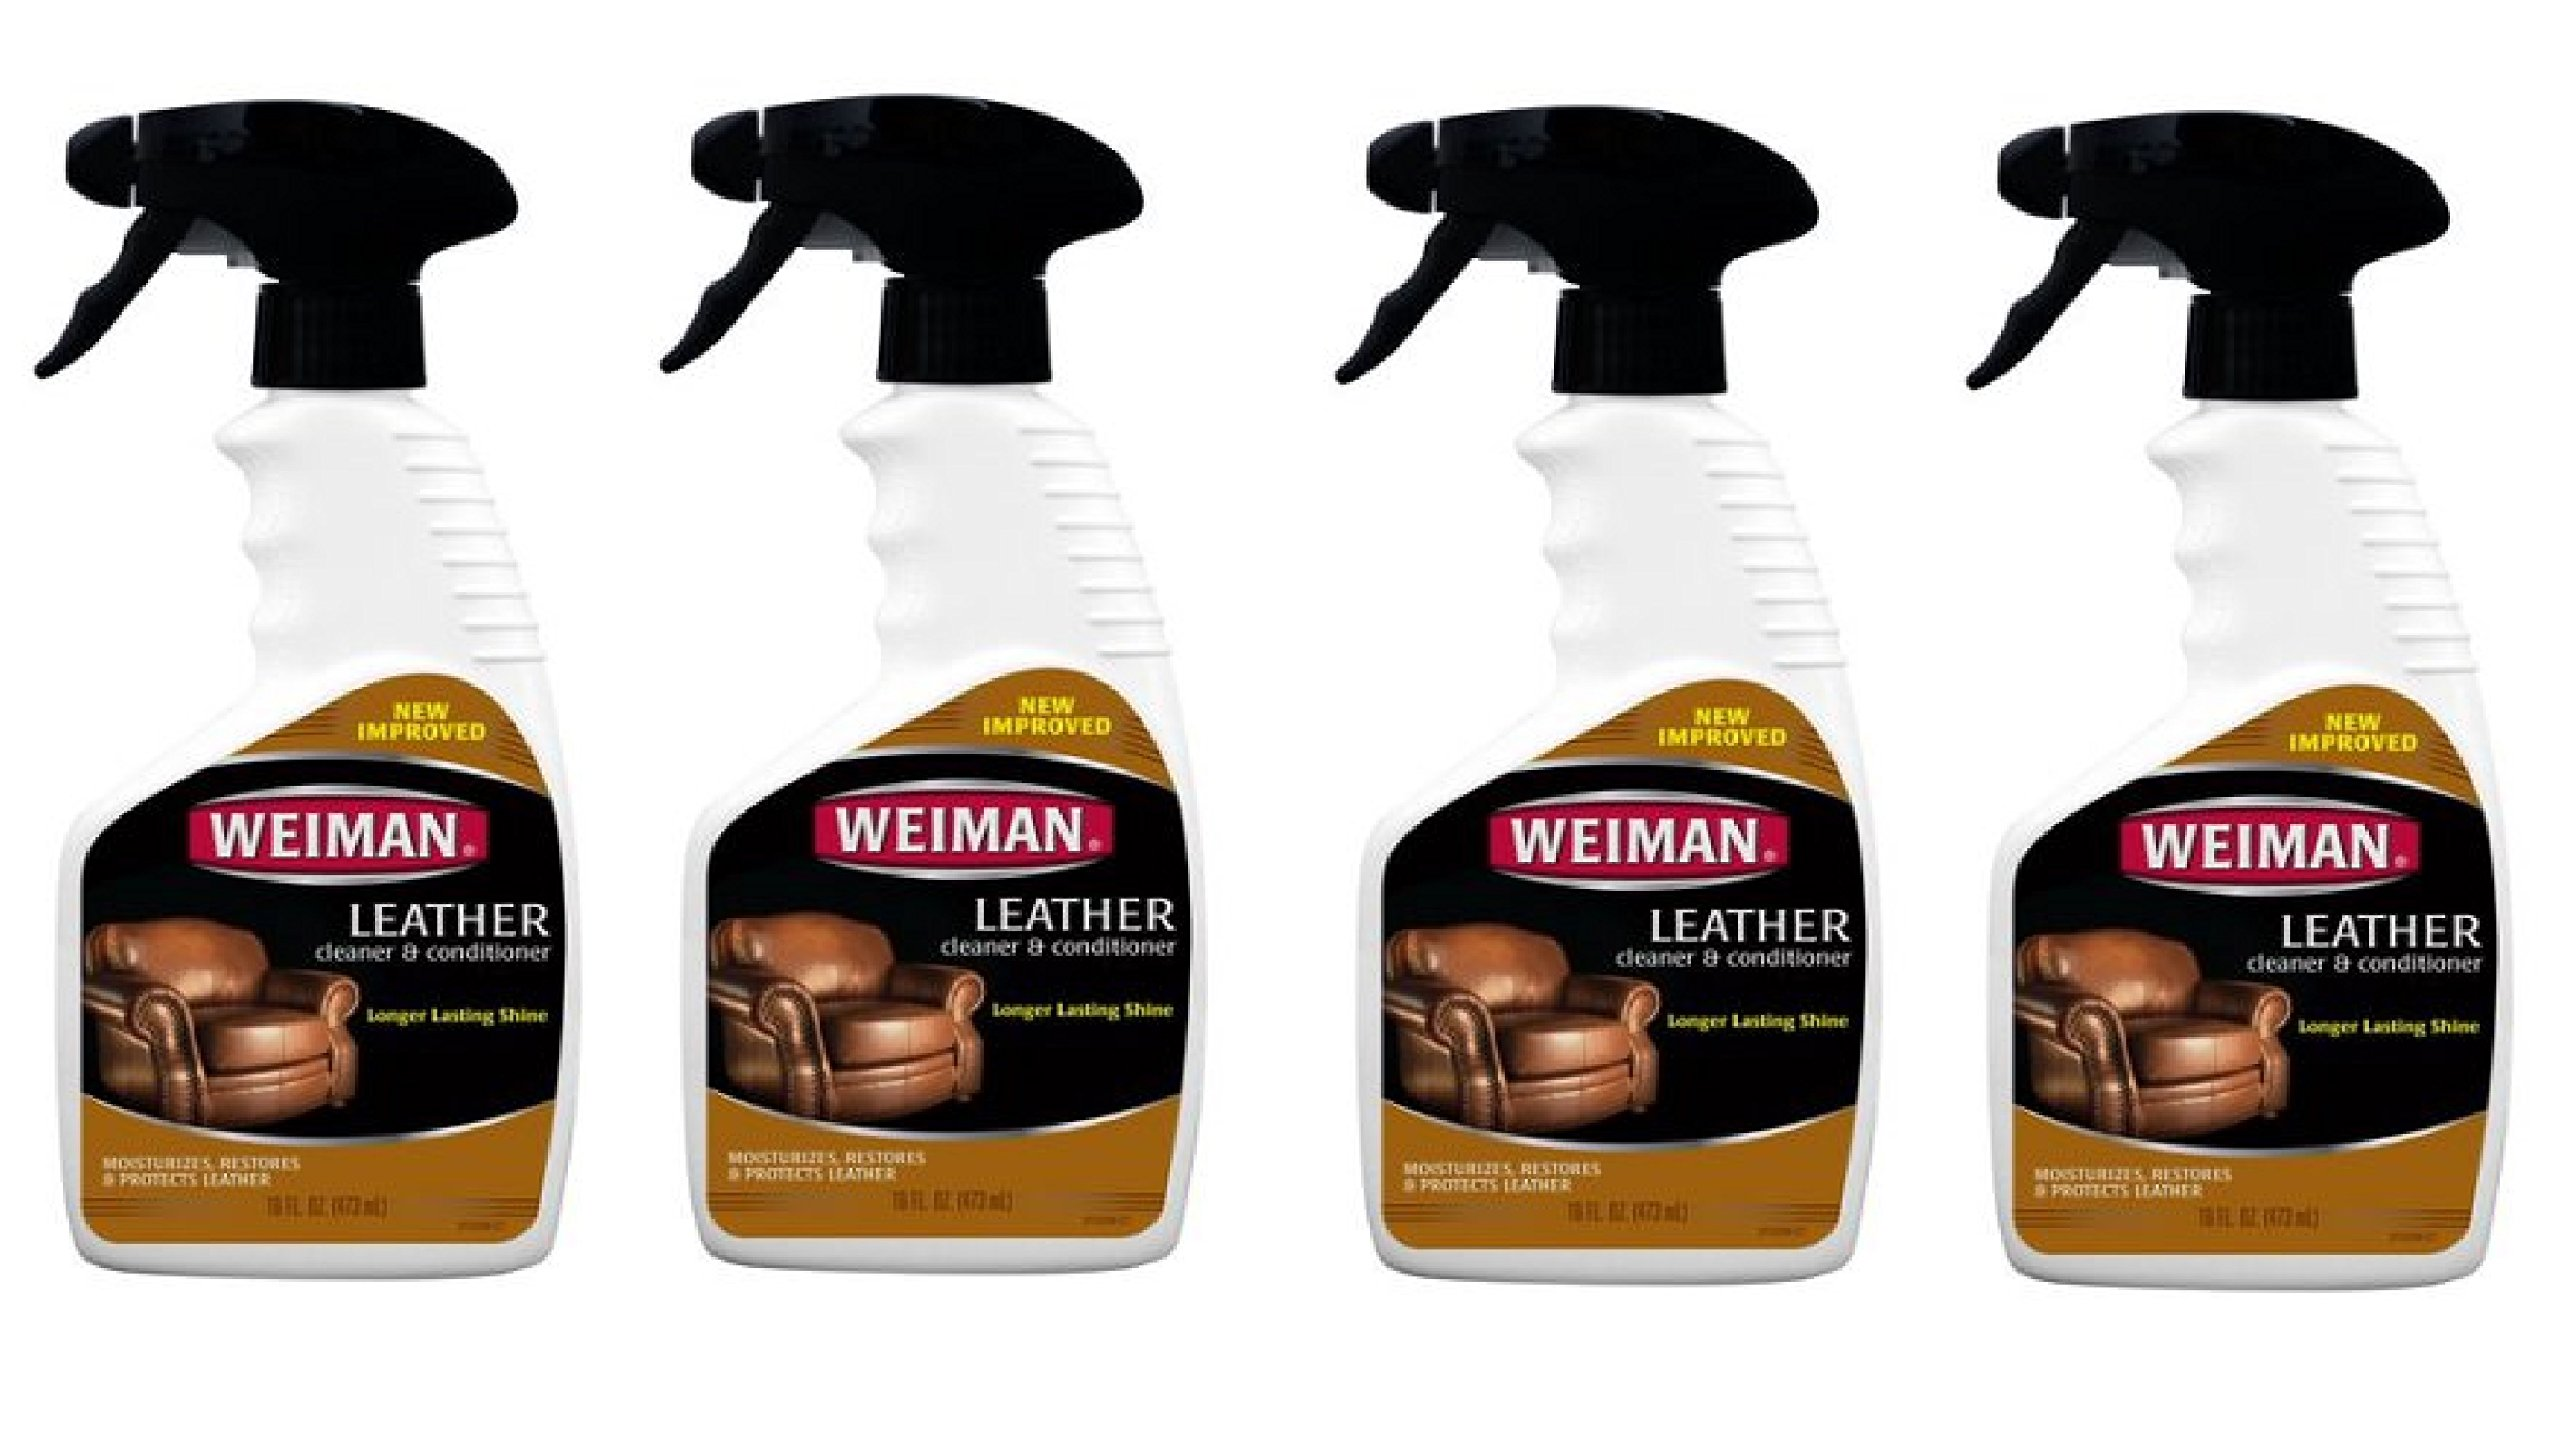 Weiman Leather Cleaner & Conditioner (16 fl oz - 4 Pack)